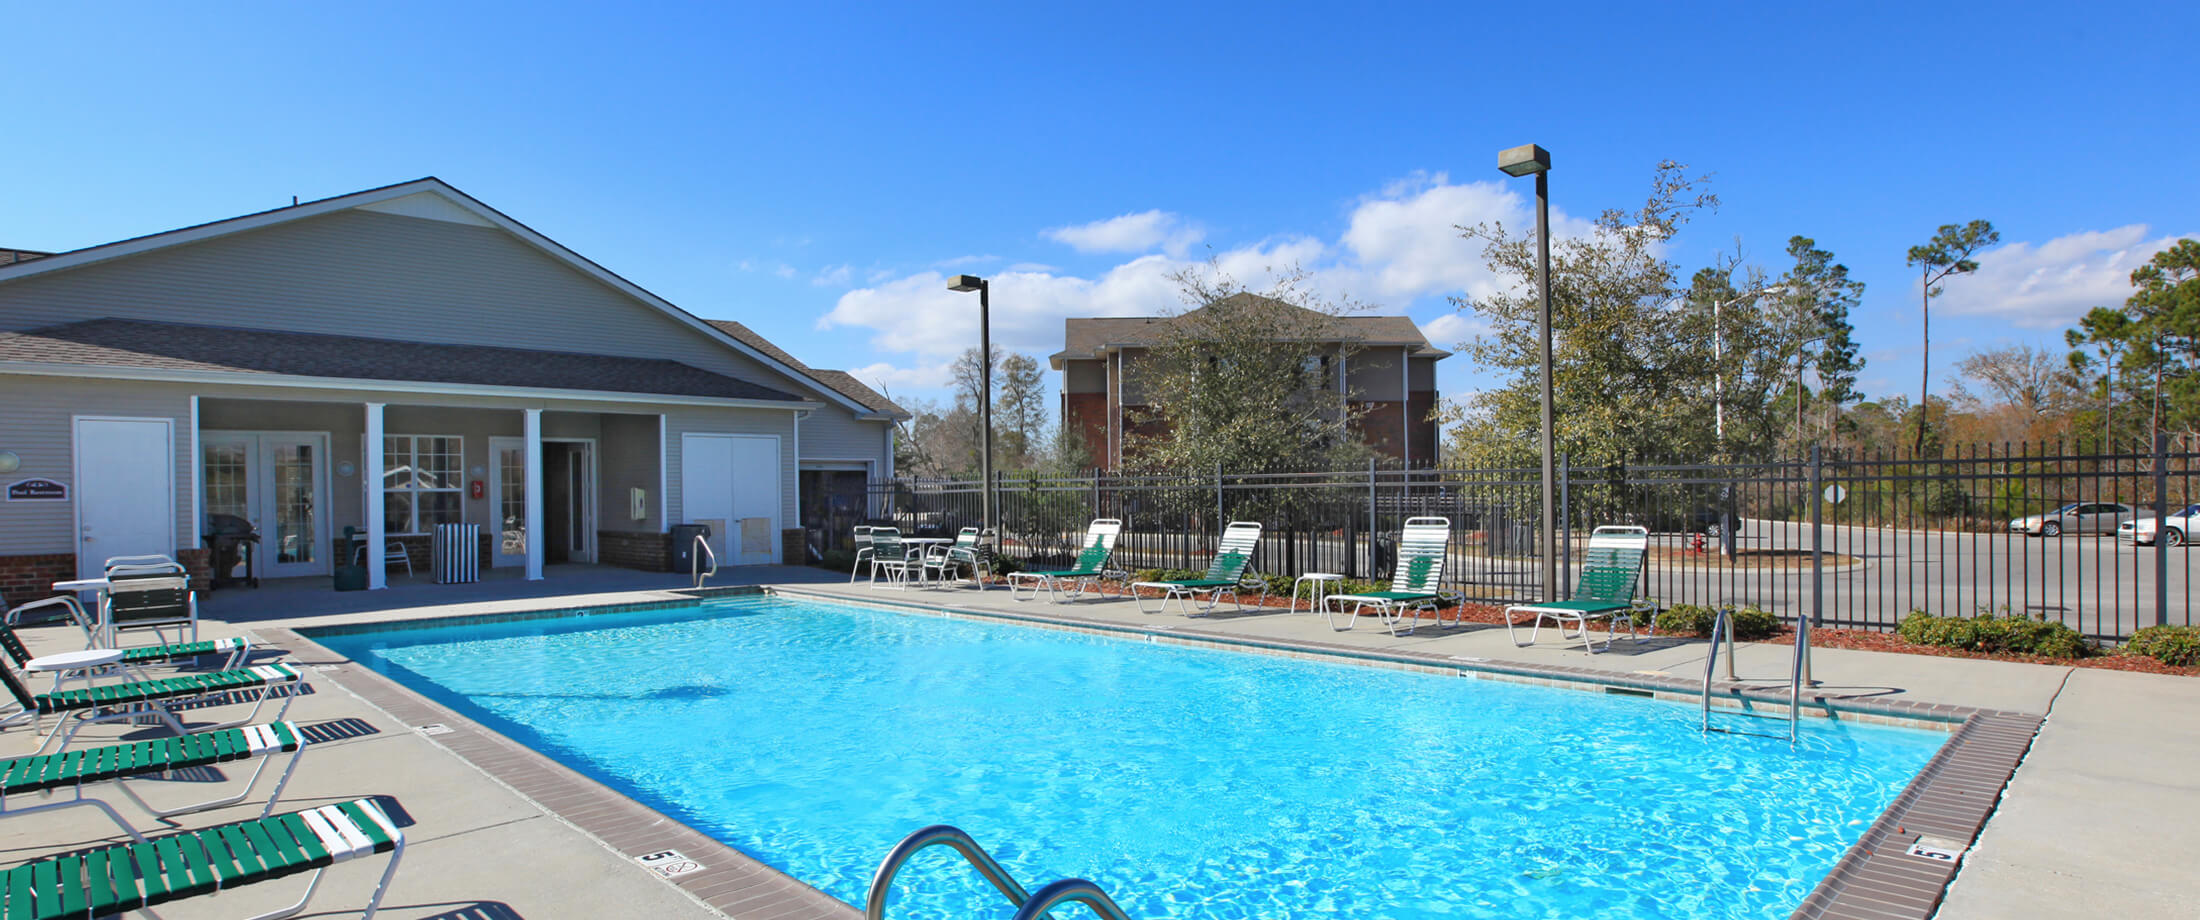 Sheffield Park - Apartments in Bay St Louis, MS